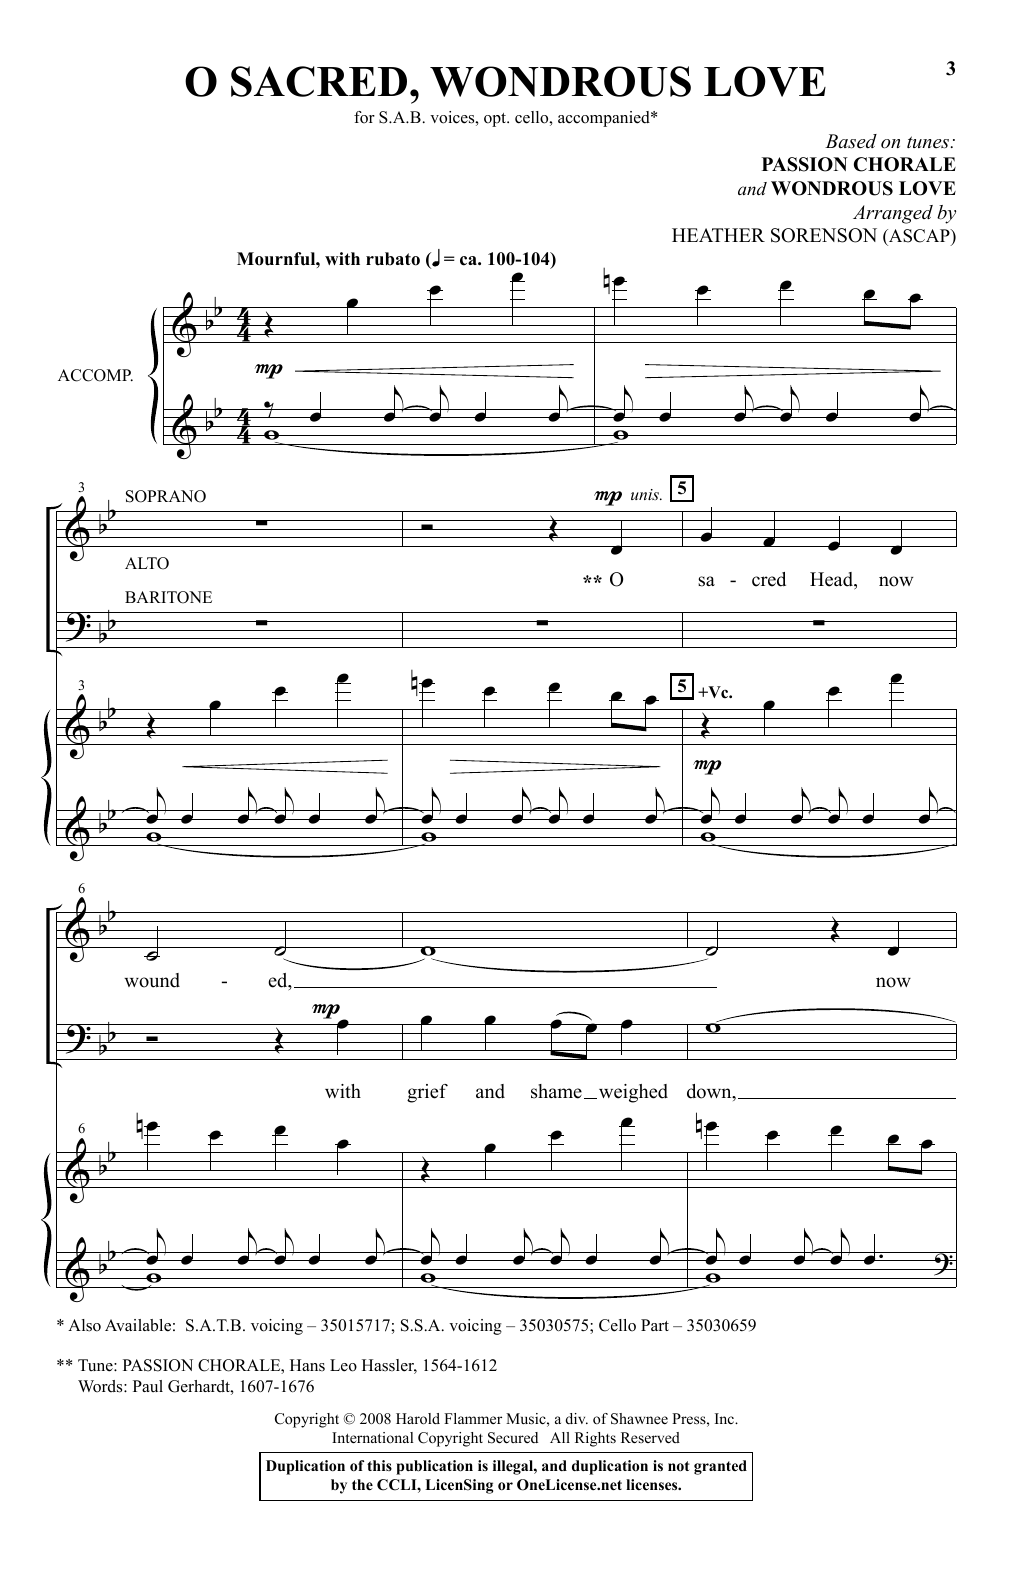 O Sacred, Wondrous Love Sheet Music